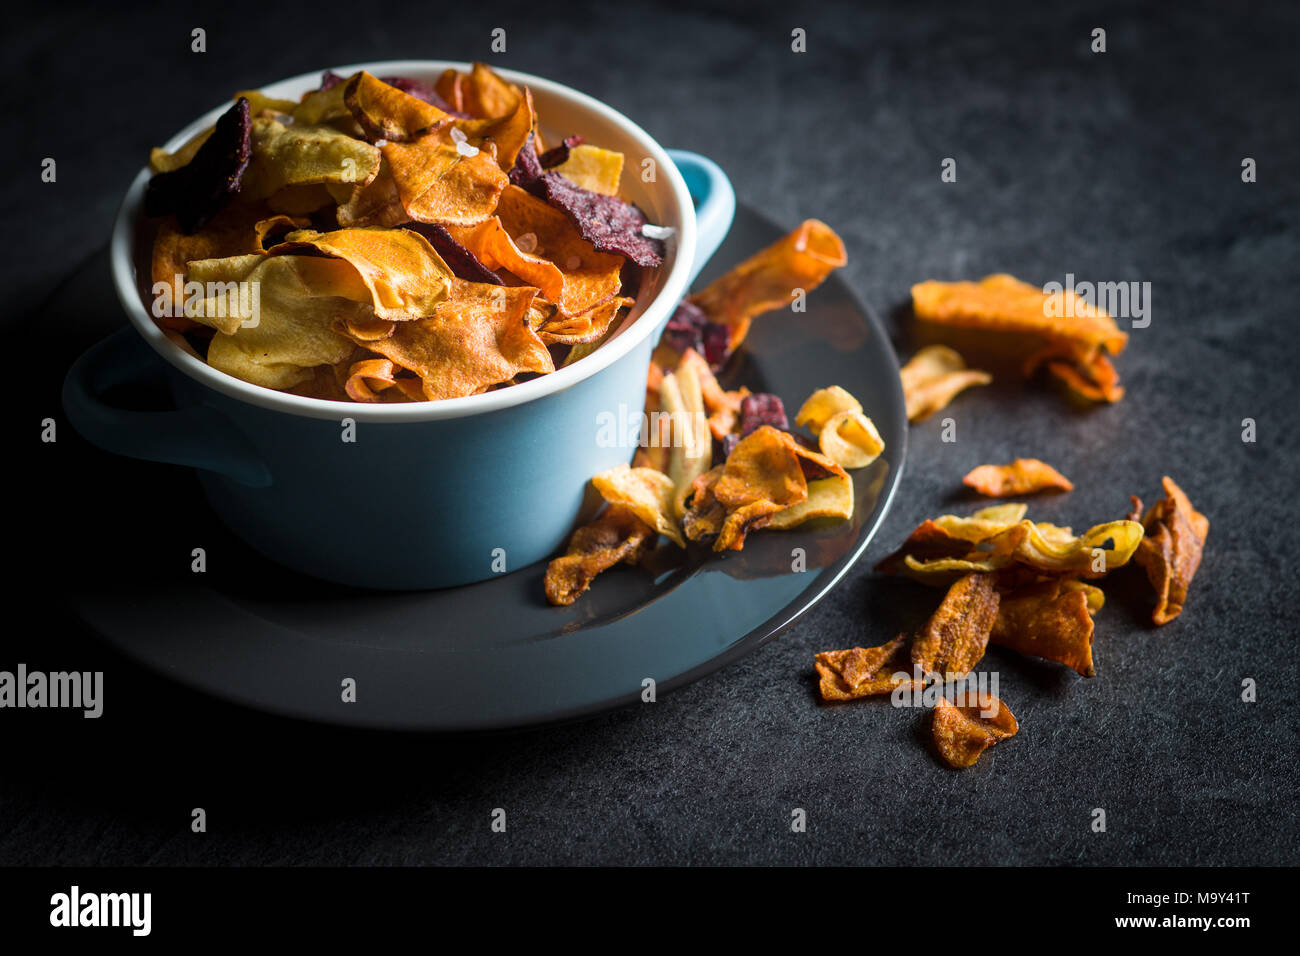 Mixed fried vegetable chips in pot. - Stock Image